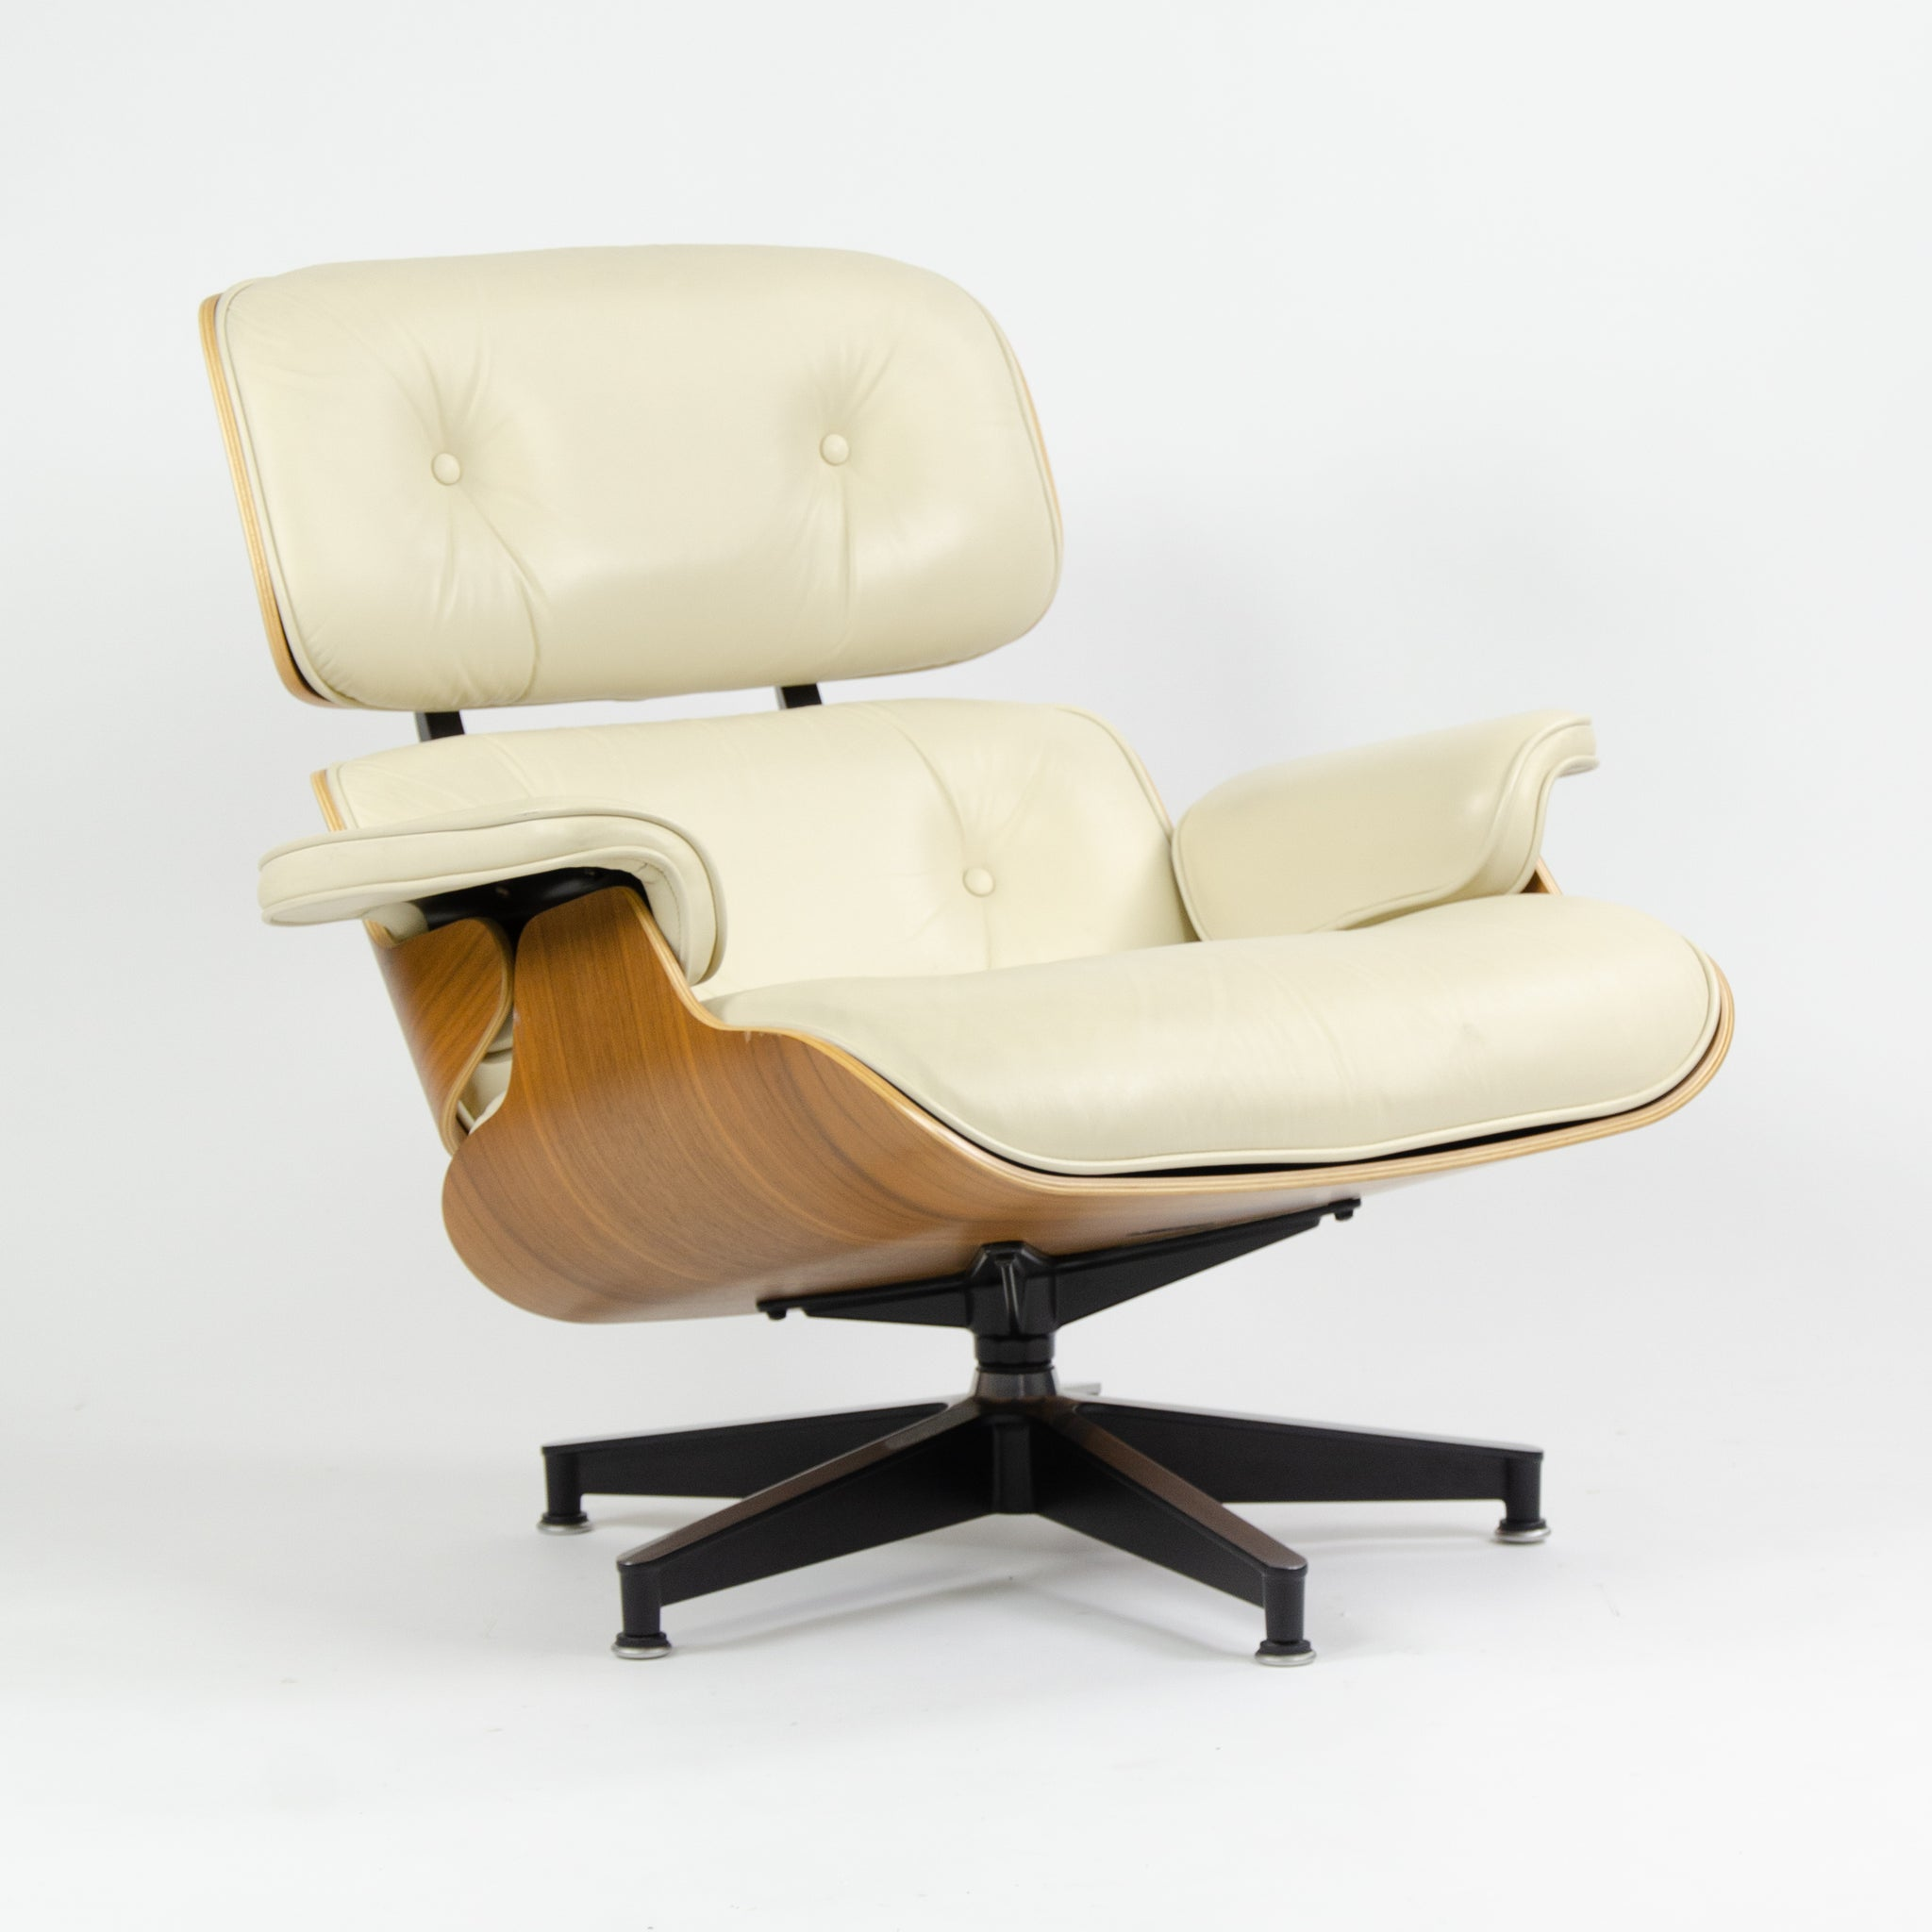 SOLD Herman Miller Eames Lounge Chair & Ottoman Walnut 670 671 Ivory Leather